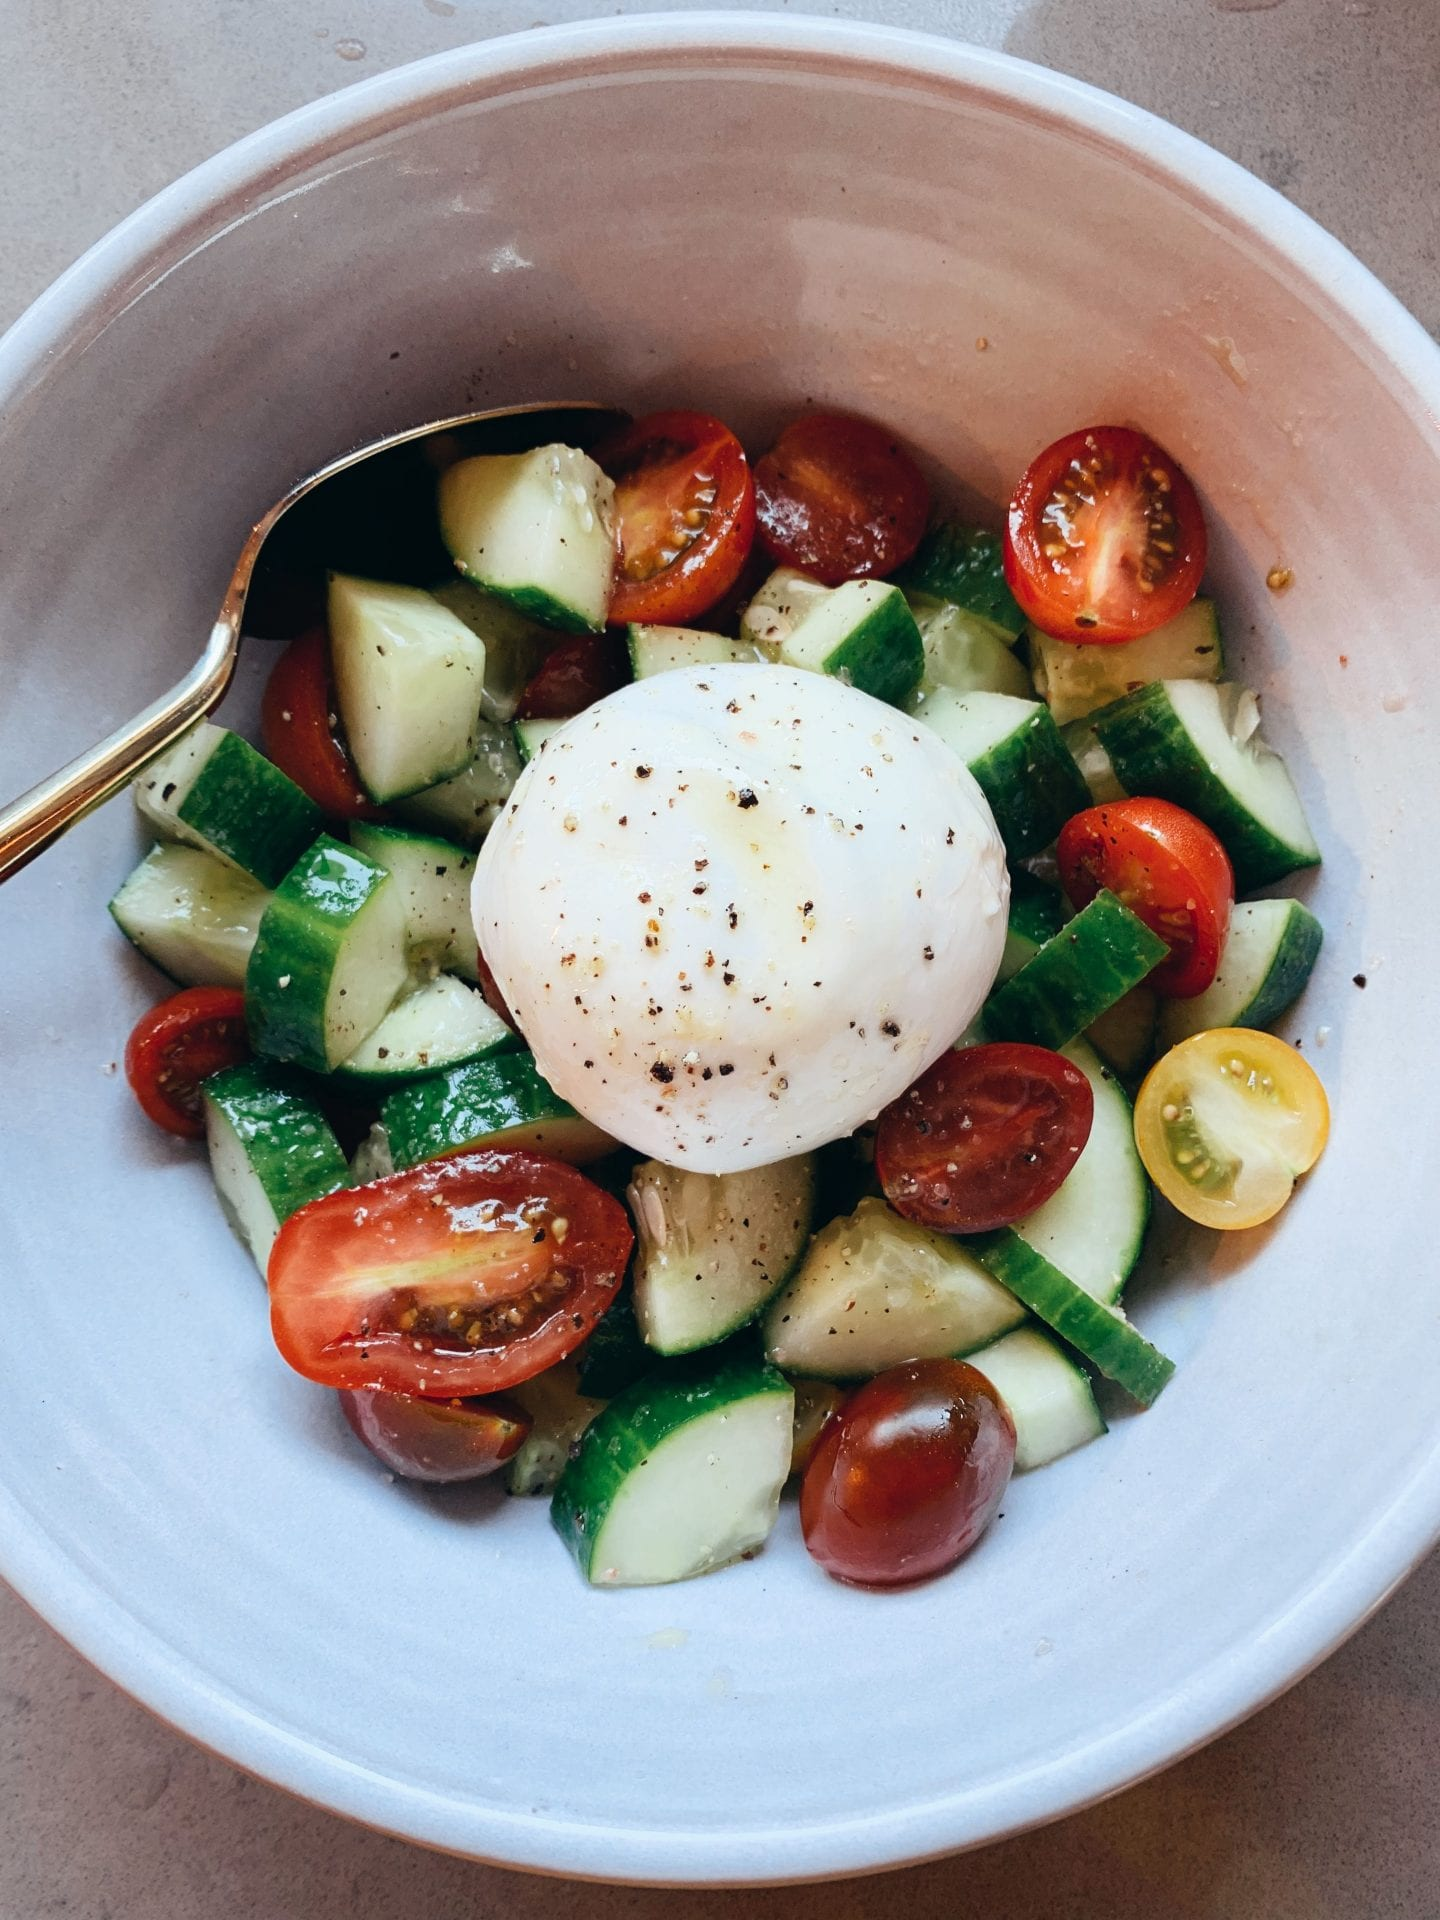 Fresh Cucumber Tomato Burrata Salad Recipe I Keto Recipe I Kept Cooking I Summer Recipe I via justaddglam.com |Fresh Cucumber Tomato Burrata Salad Recipe--Keto Friendly! by popular life and style blog, Just Add Glam: image of some burrata salad in a white ceramic bowl with a gold spoon.